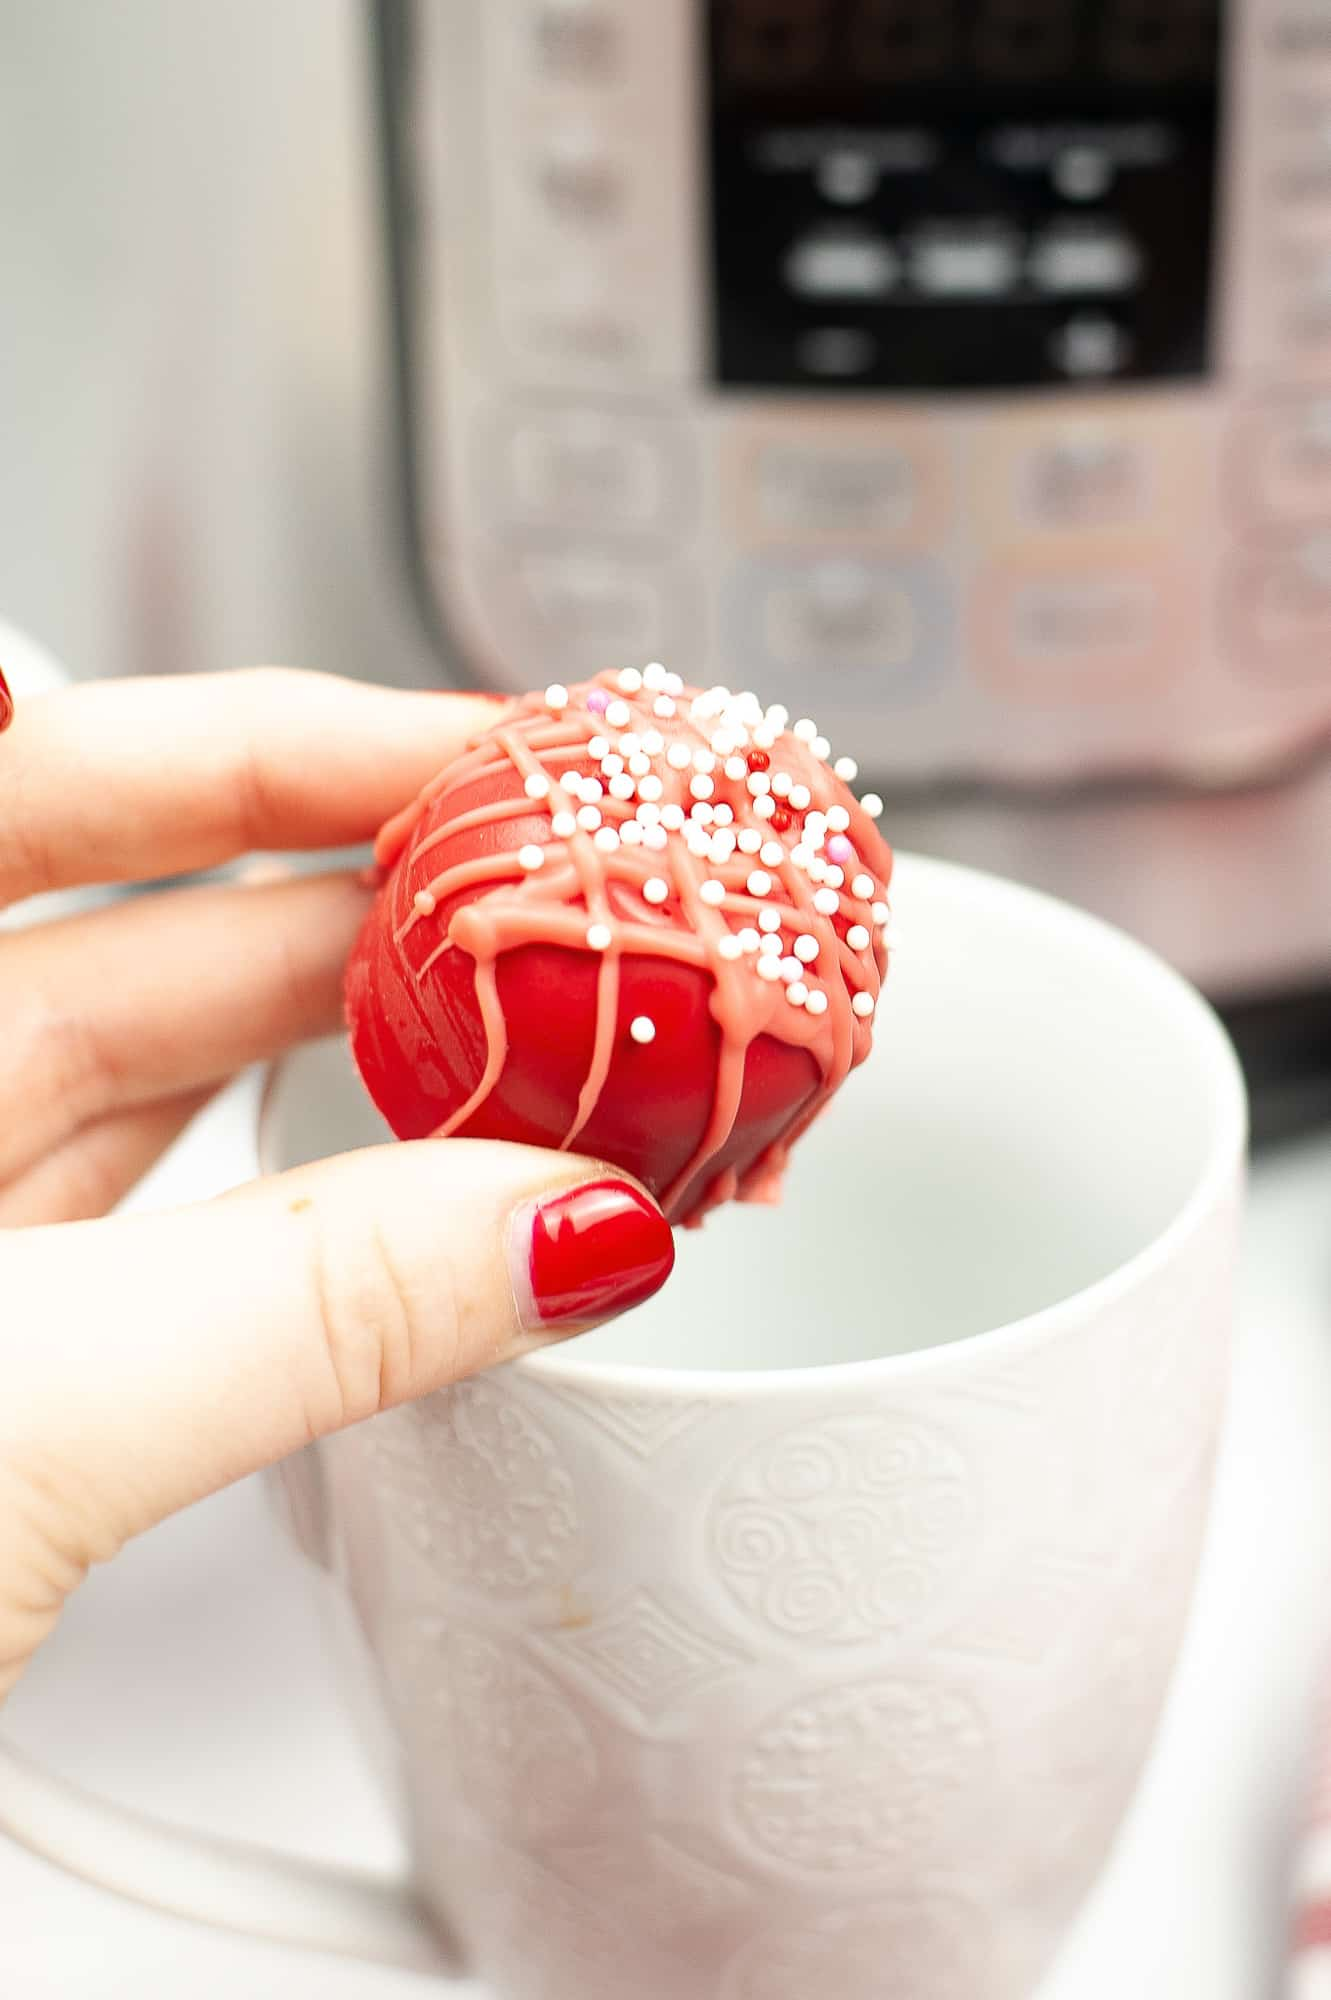 hand with red painted finger nails holding a red hot cocoa bomb over a white mug